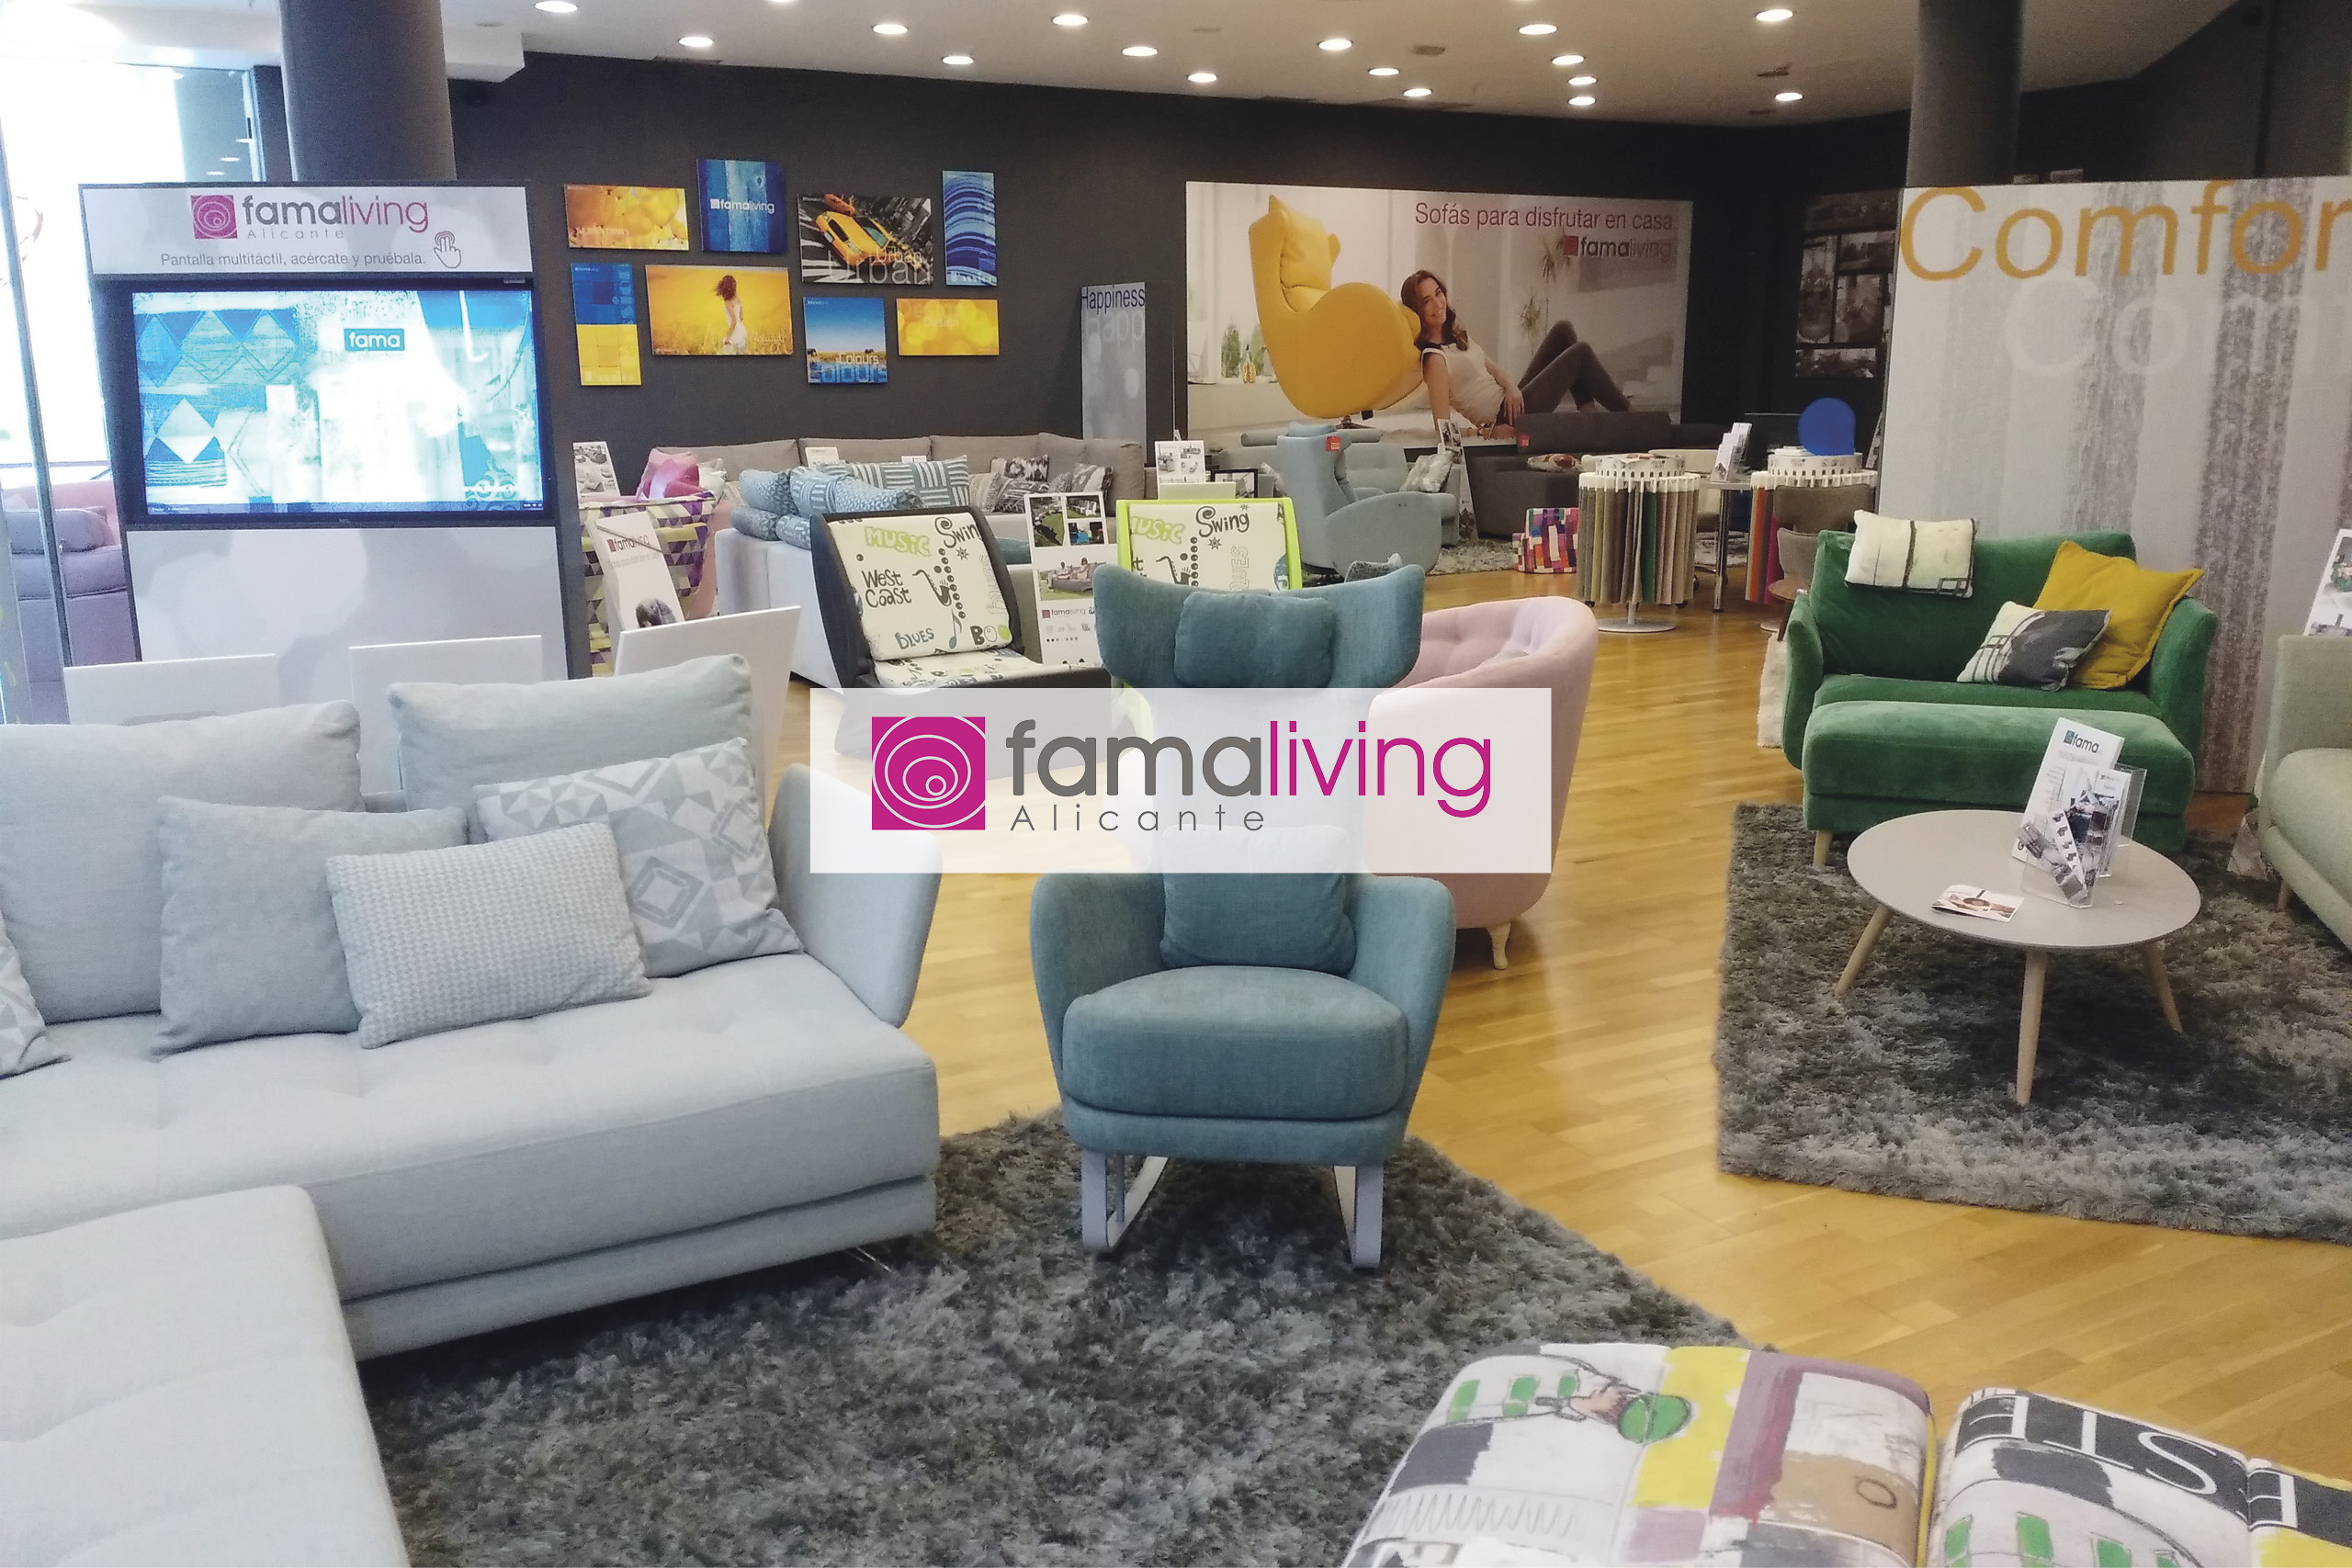 https://www.famaliving.com/alicante-en